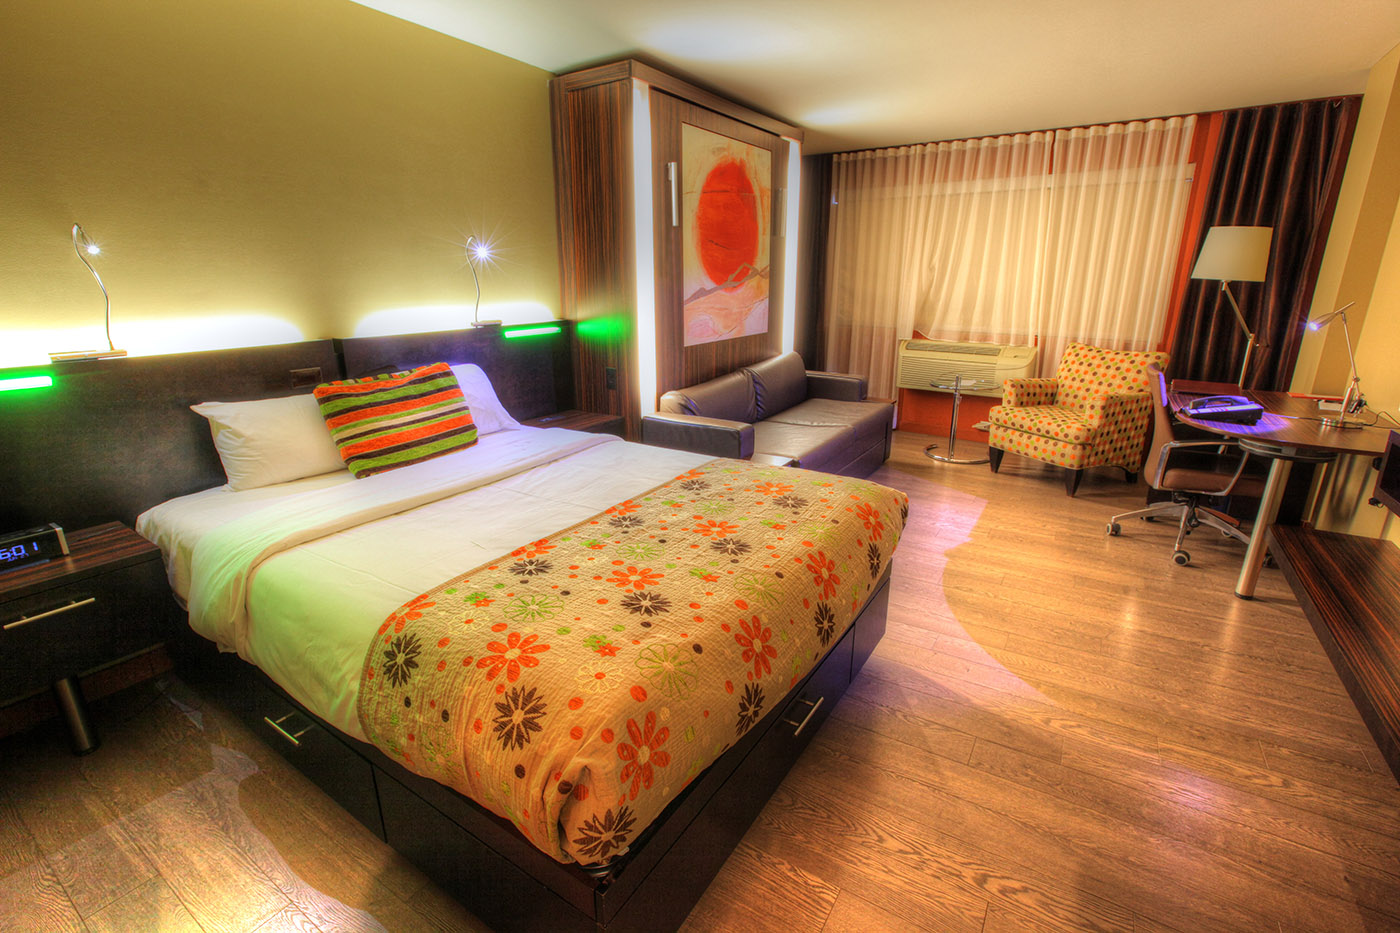 Colorful Hotel Room - RF Stock Image